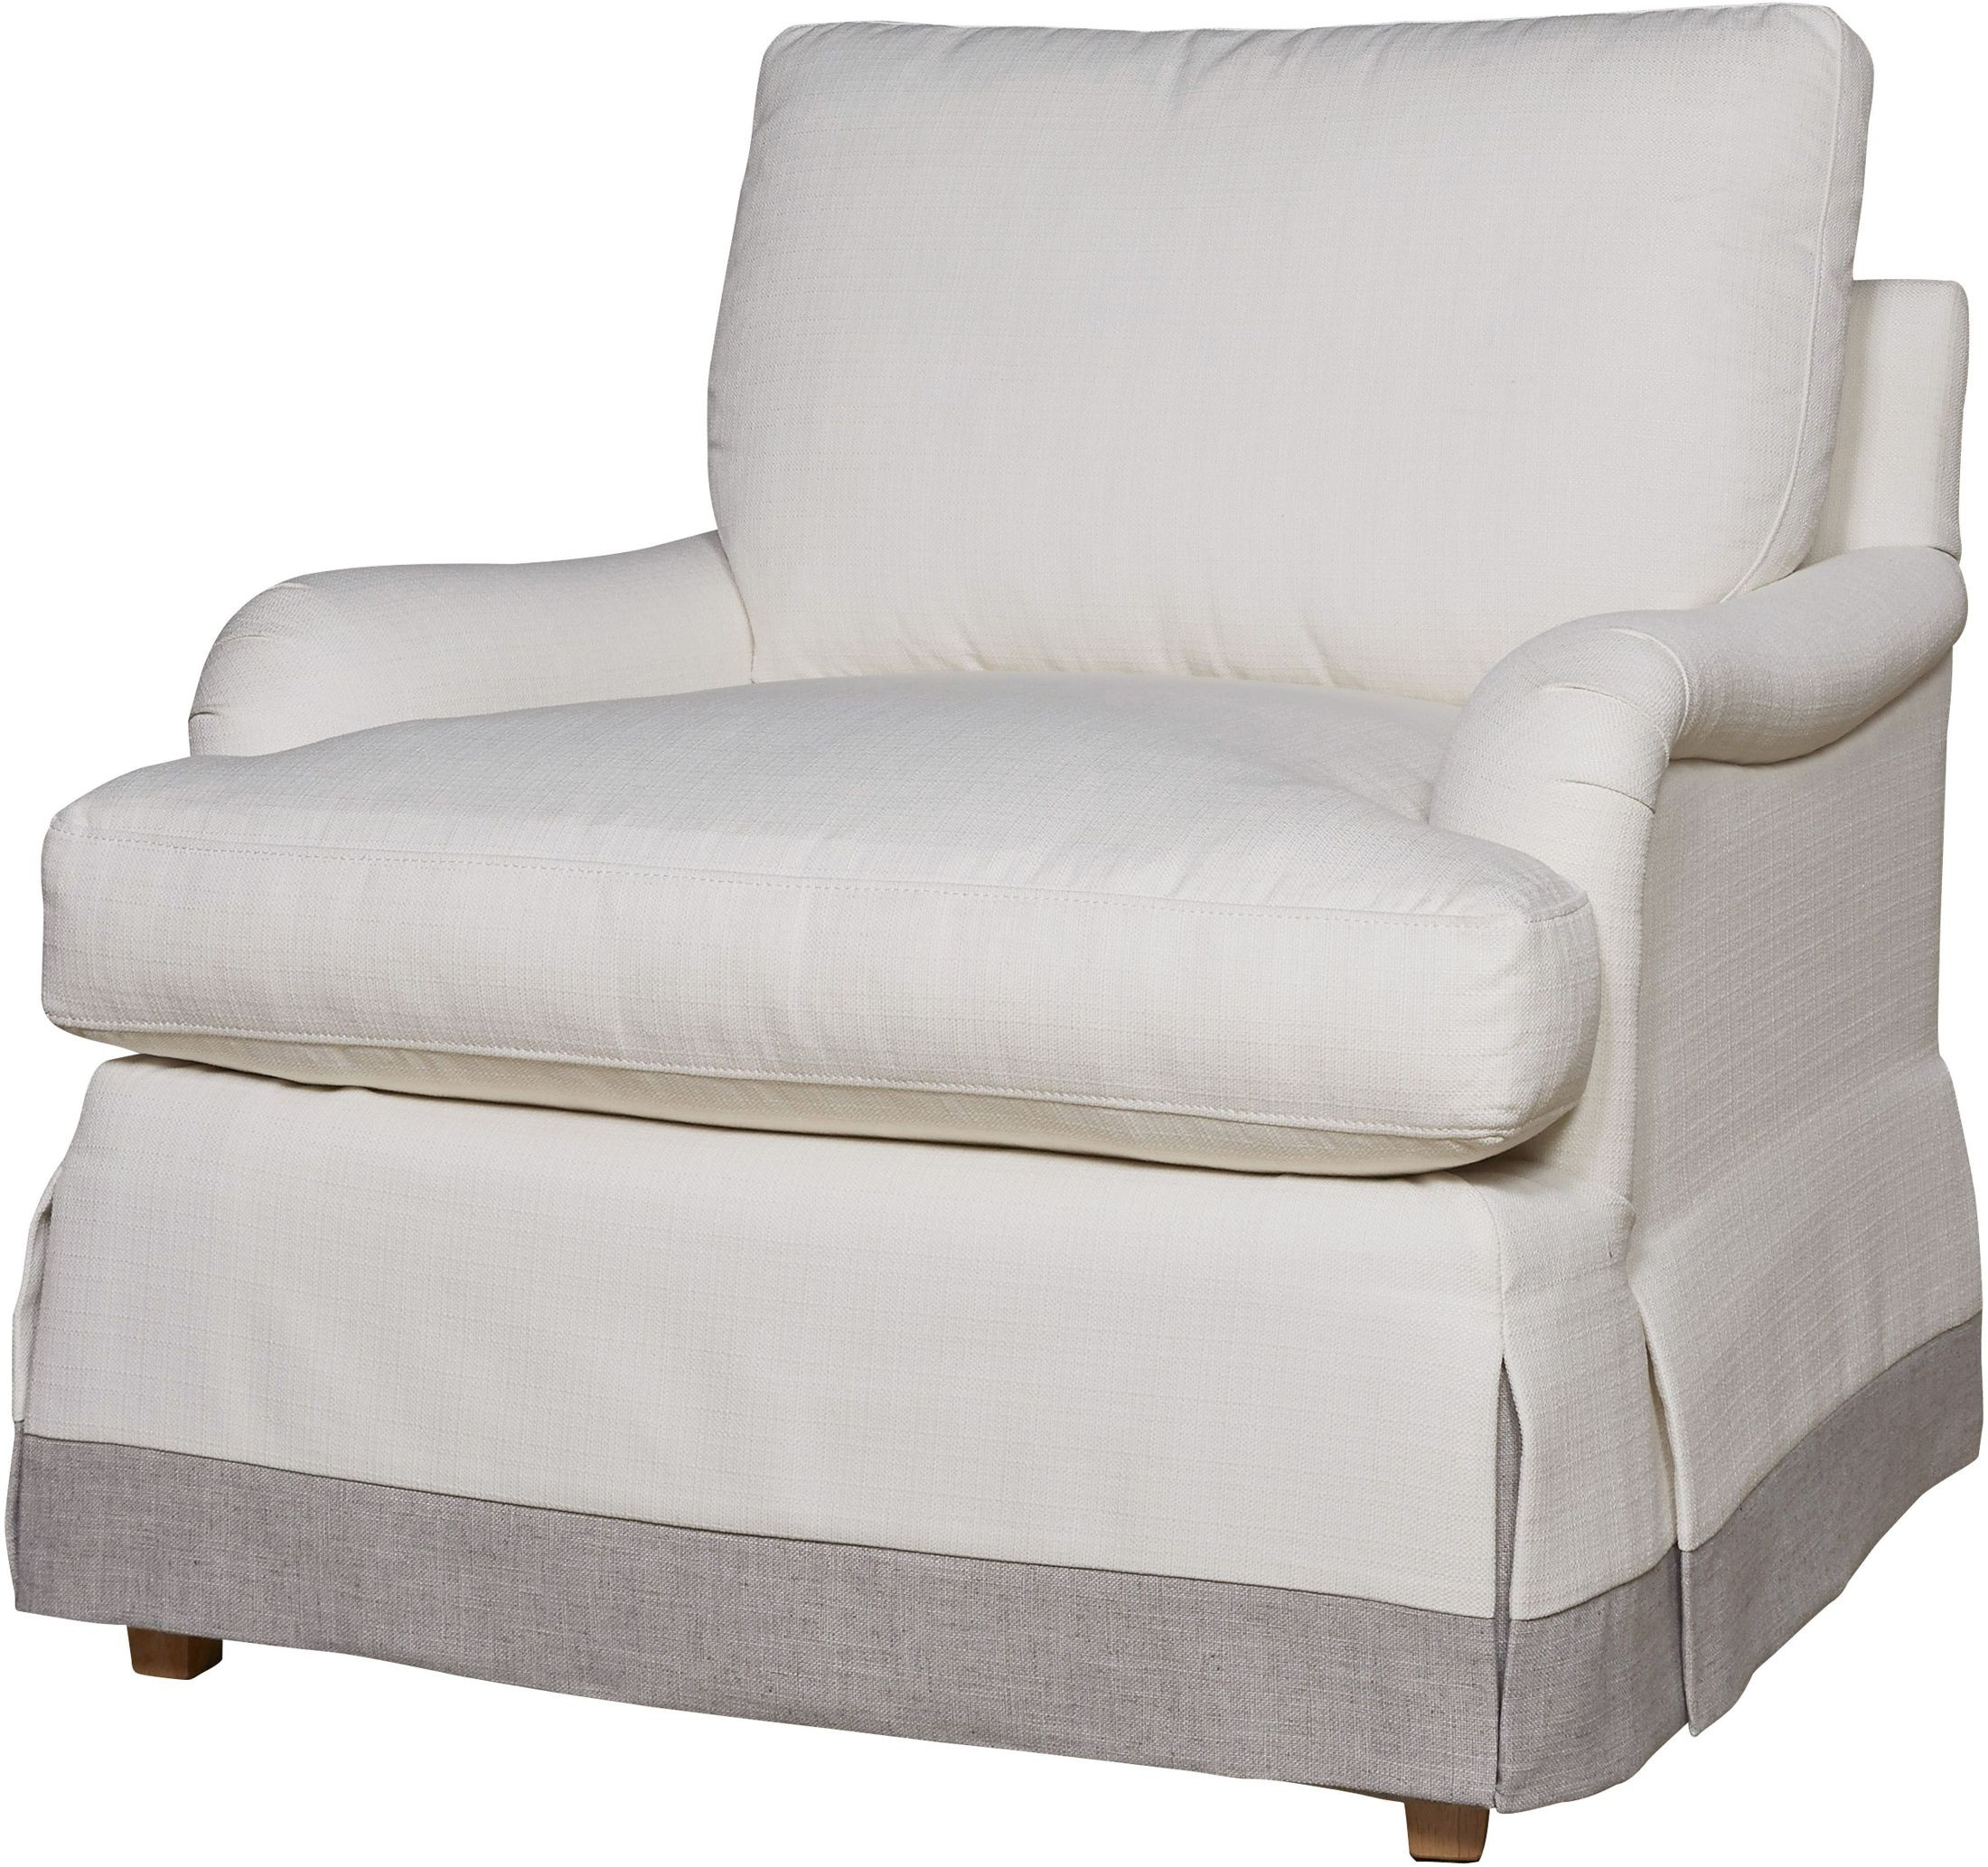 Salt Chair Curated Carmichael Salt Chair From Universal Coleman